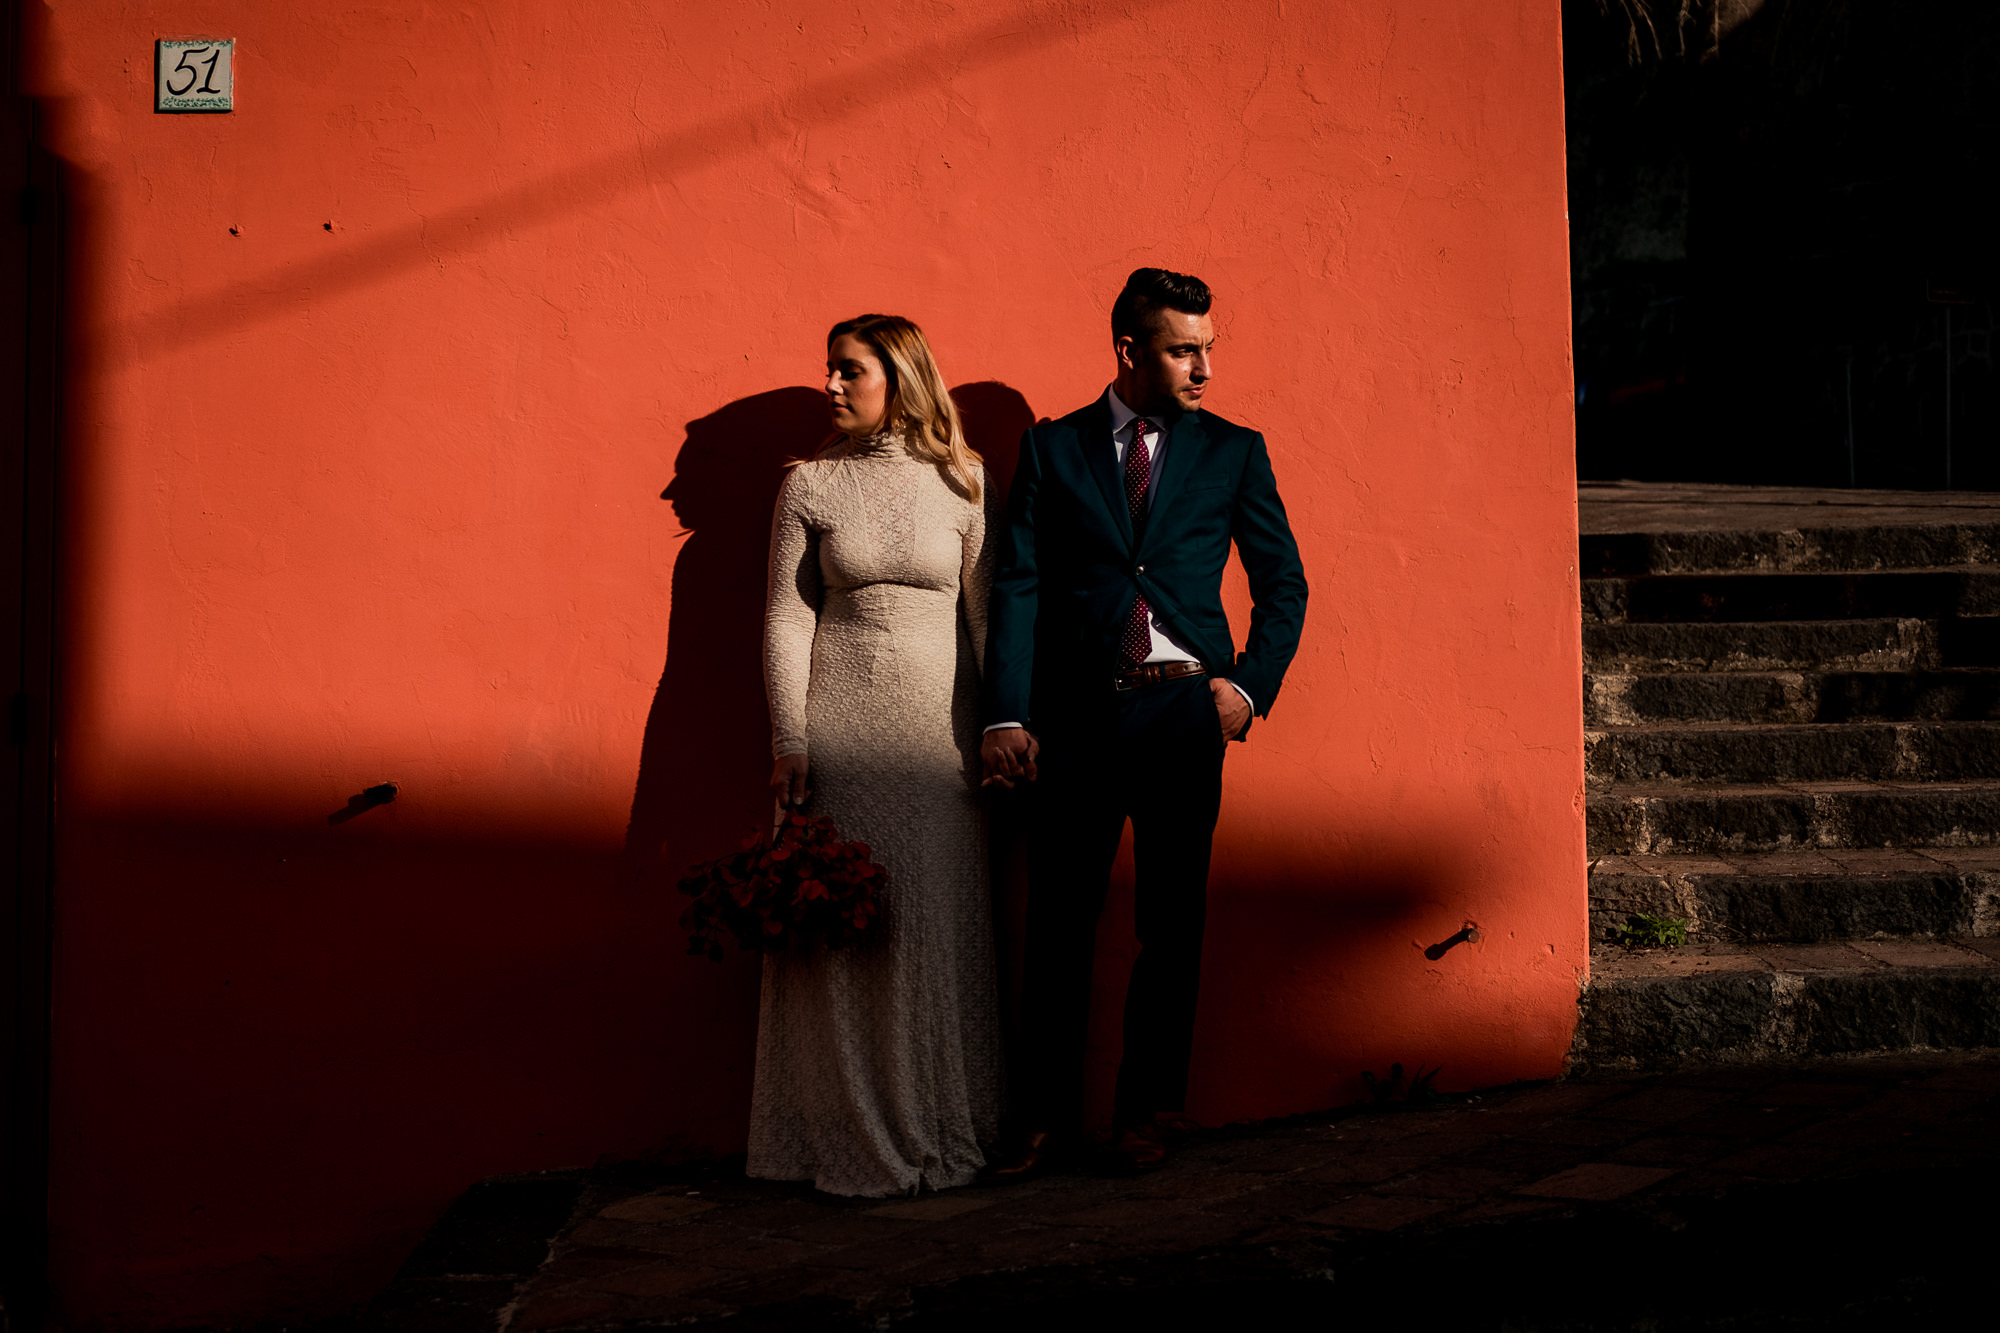 Serious couple strikes a pose photo by Nordica Photography